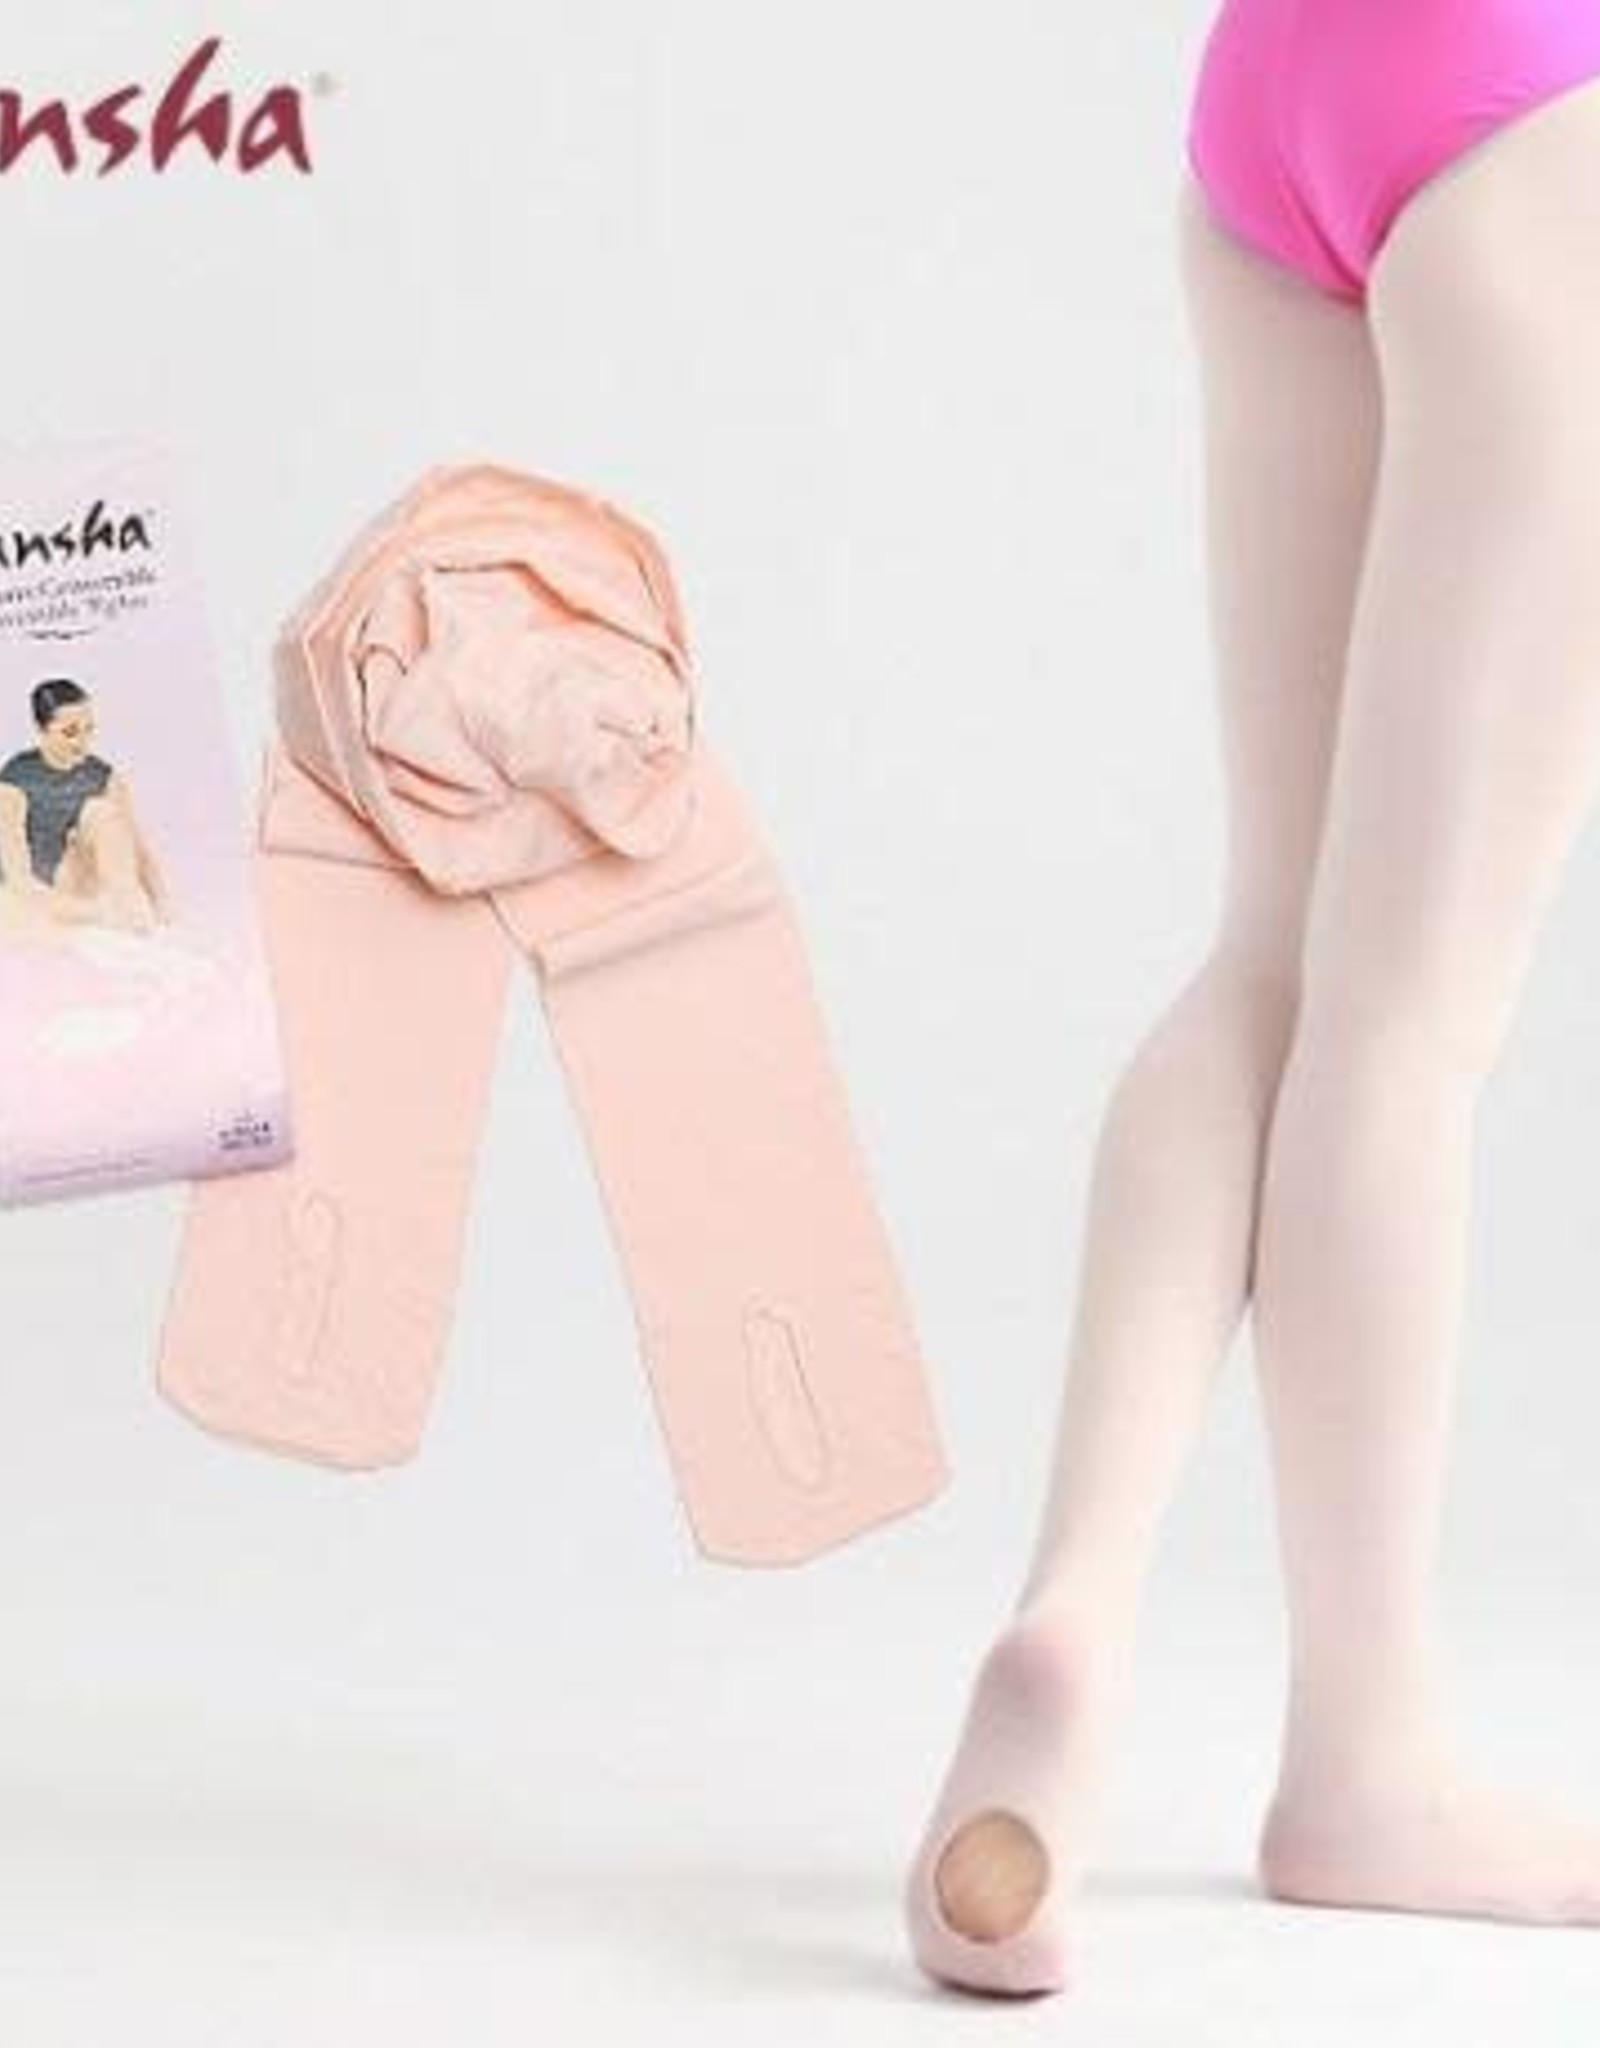 Sansha Convertible tights Pink & Black